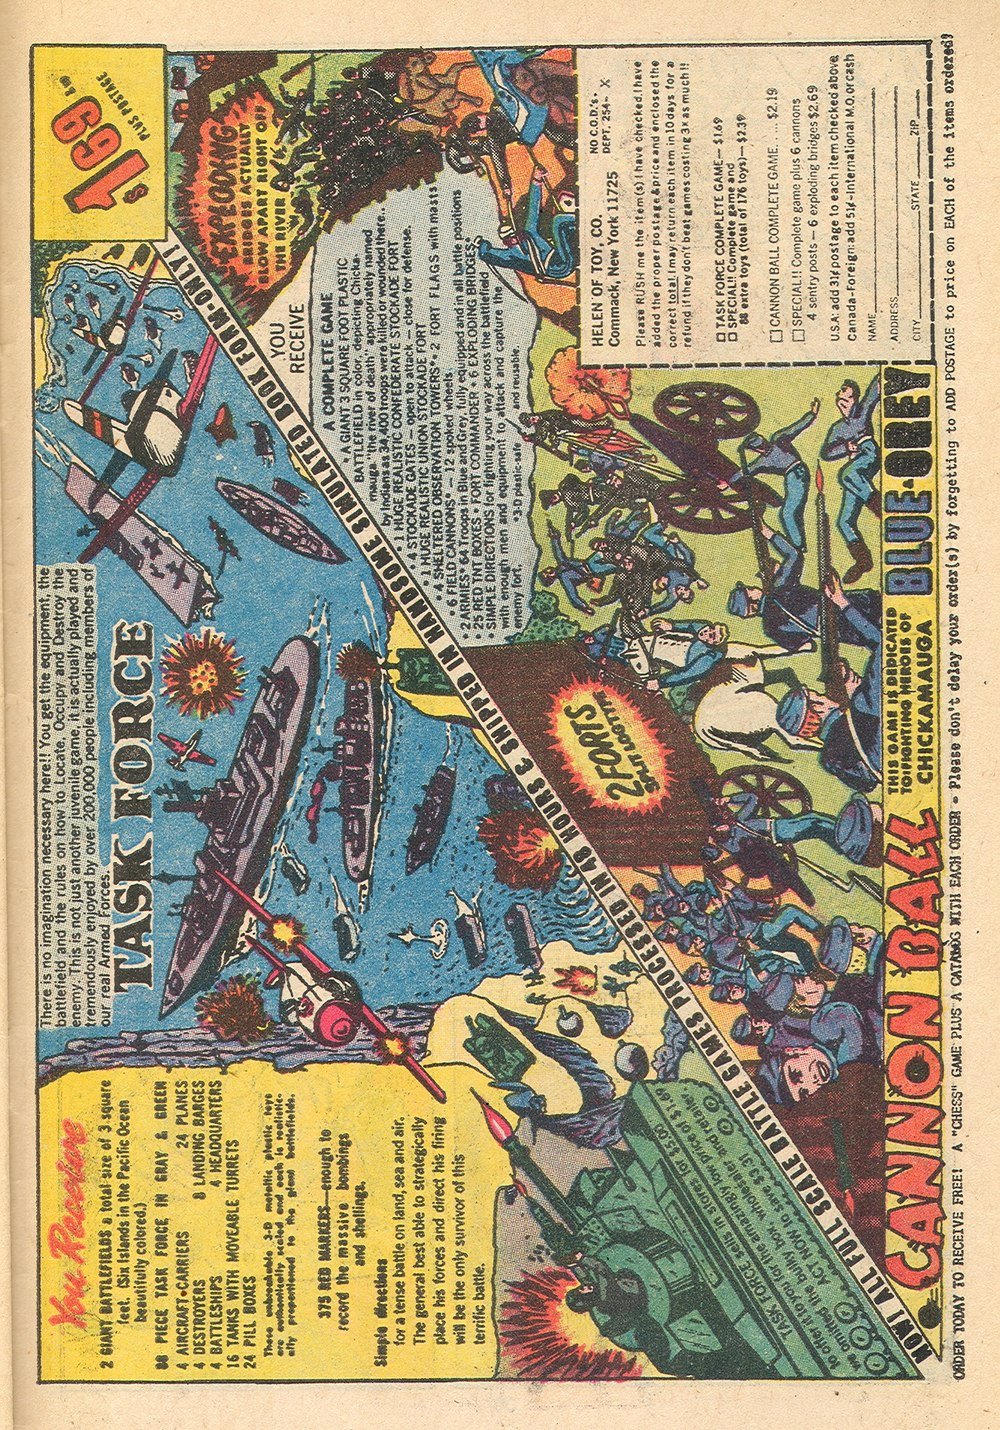 Read online Sgt. Fury comic -  Issue #114 - 31